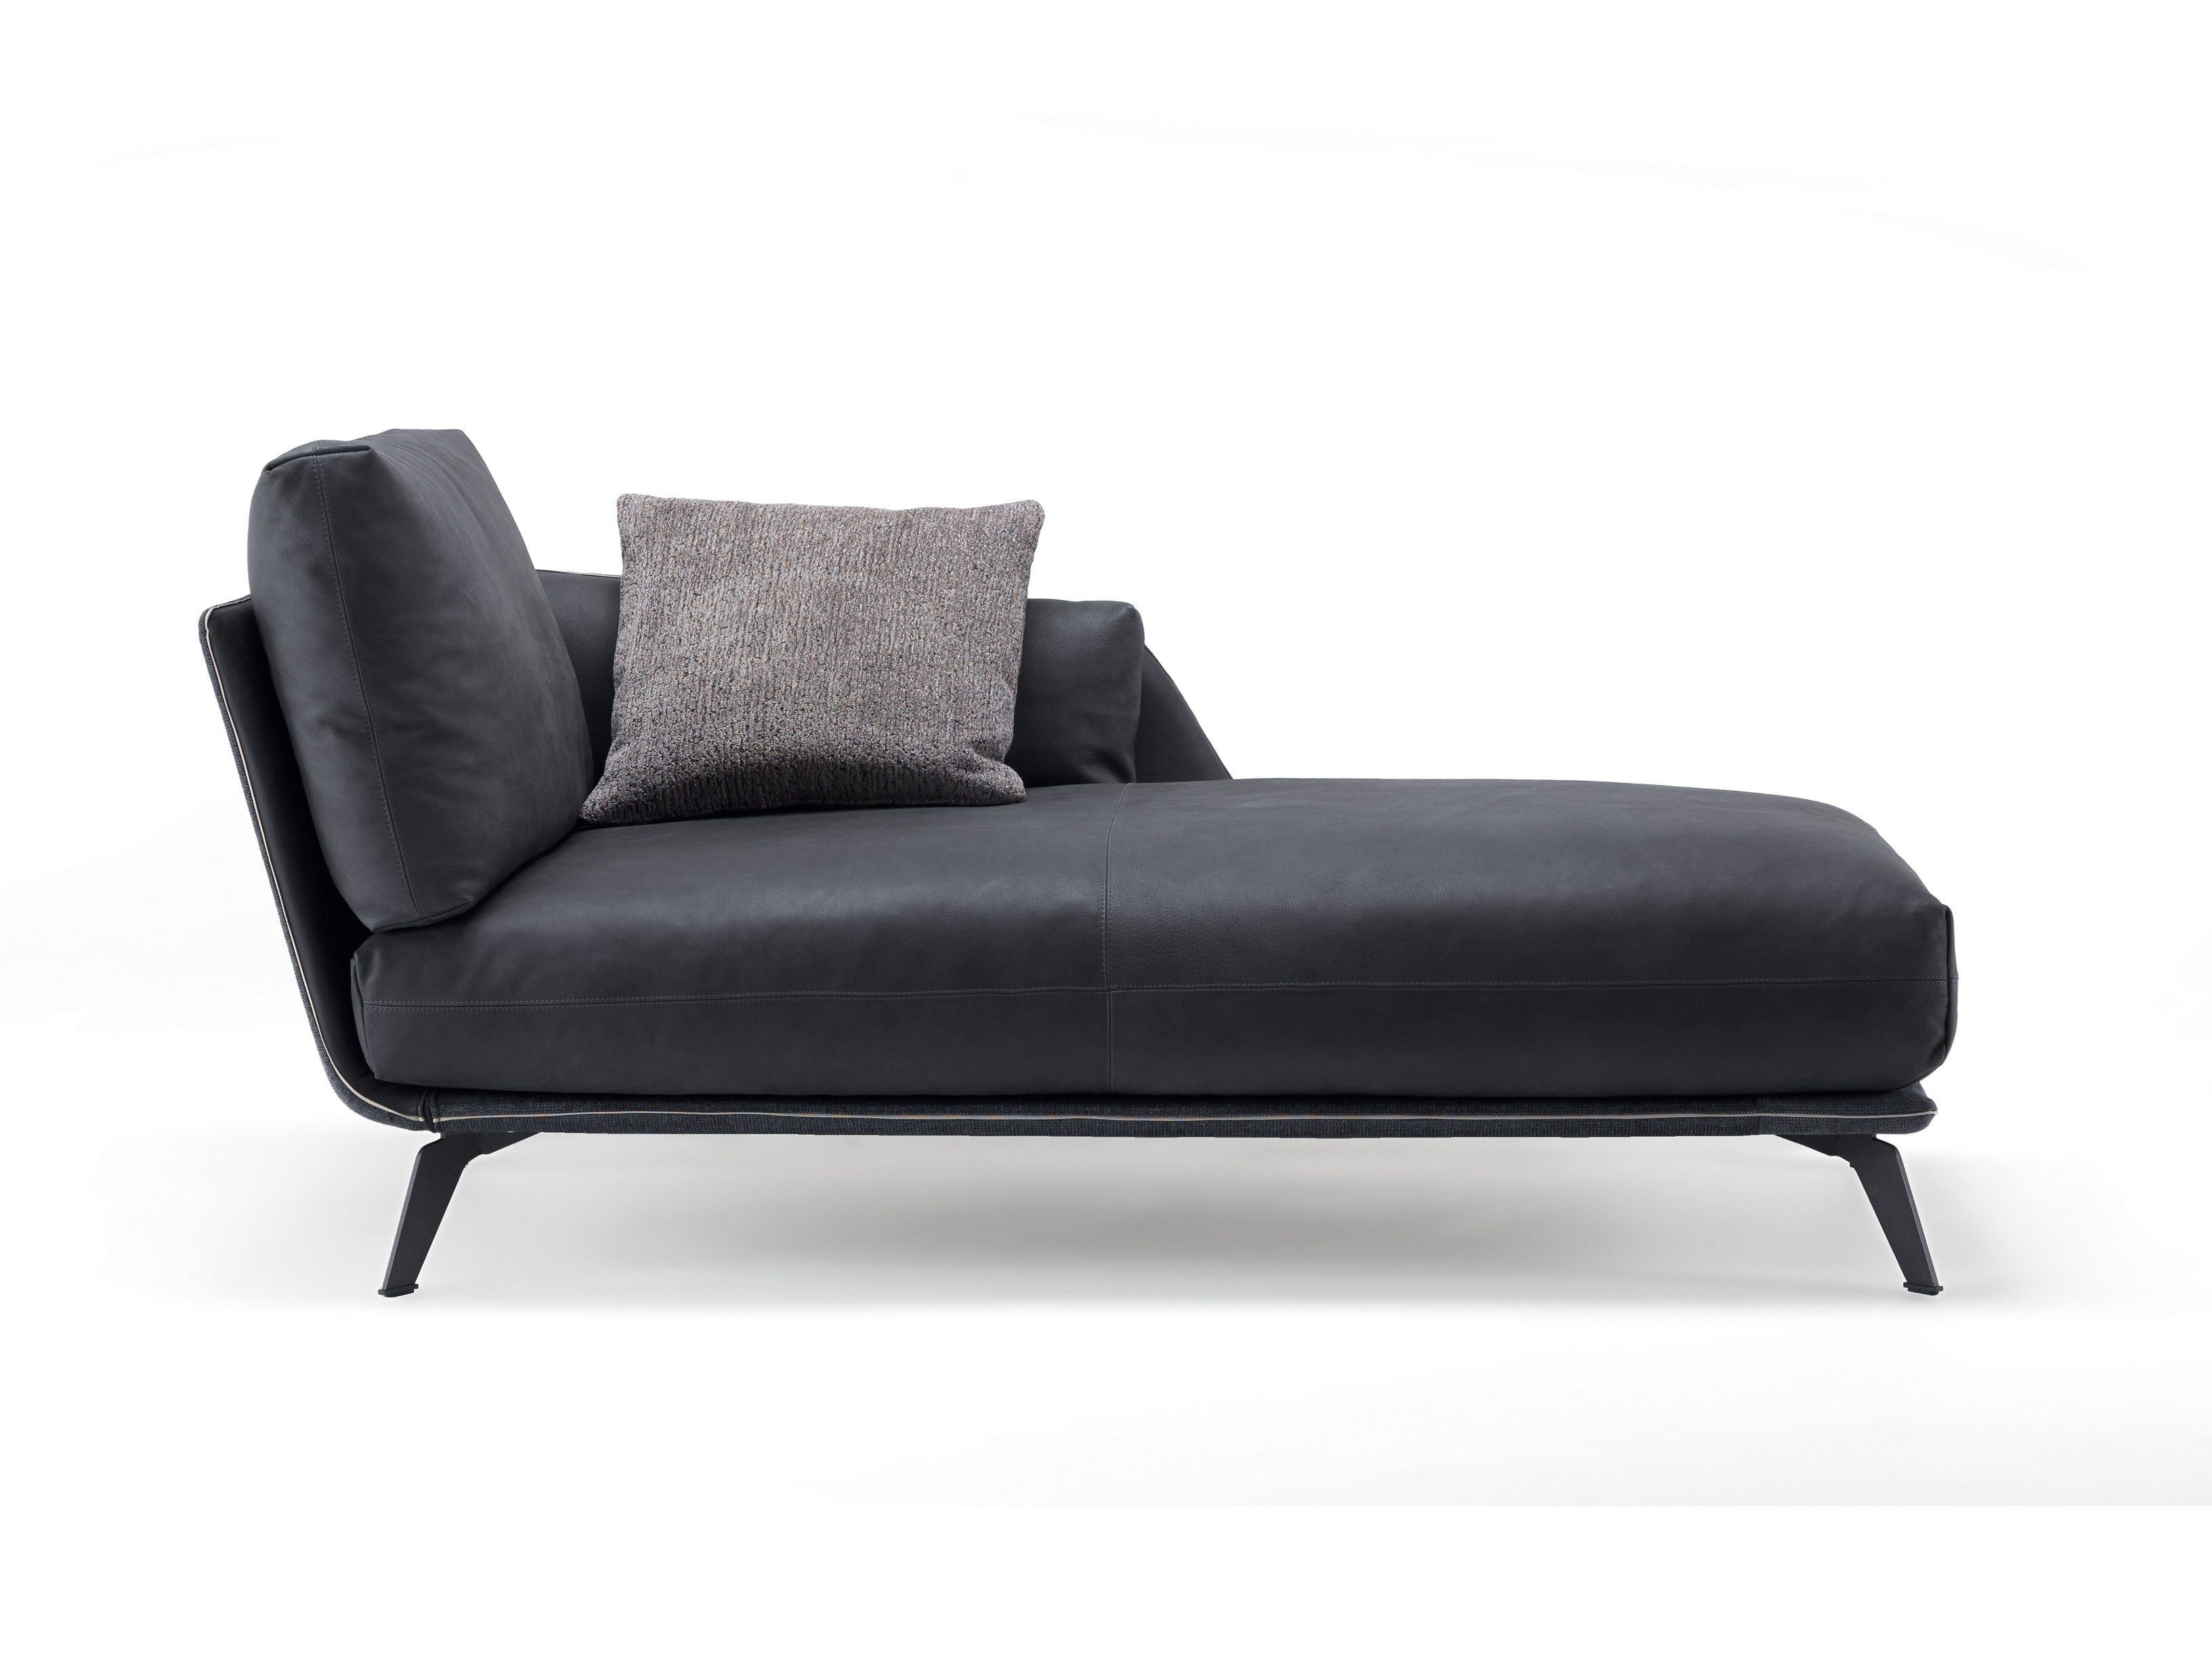 Fabric Day Bed Morrison Day Bed Morrison Collection By Arketipo Design Mauro Lipparini